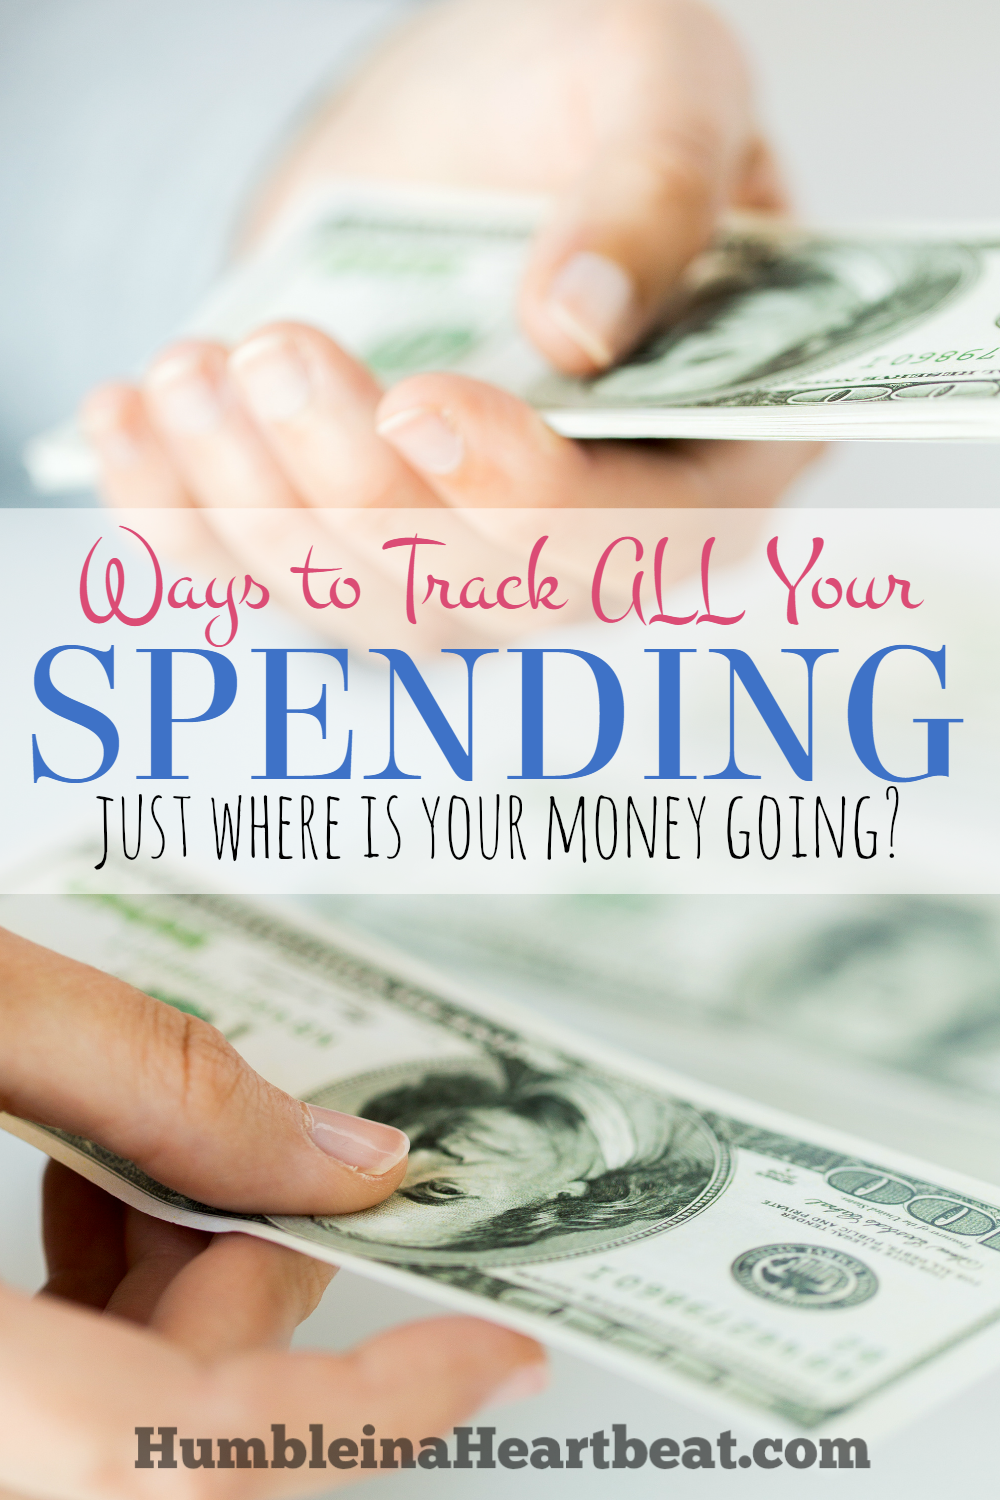 You can't budget unless you know what's going on with your money. All your spending should be tracked, and here are 4 simple ways to do that.